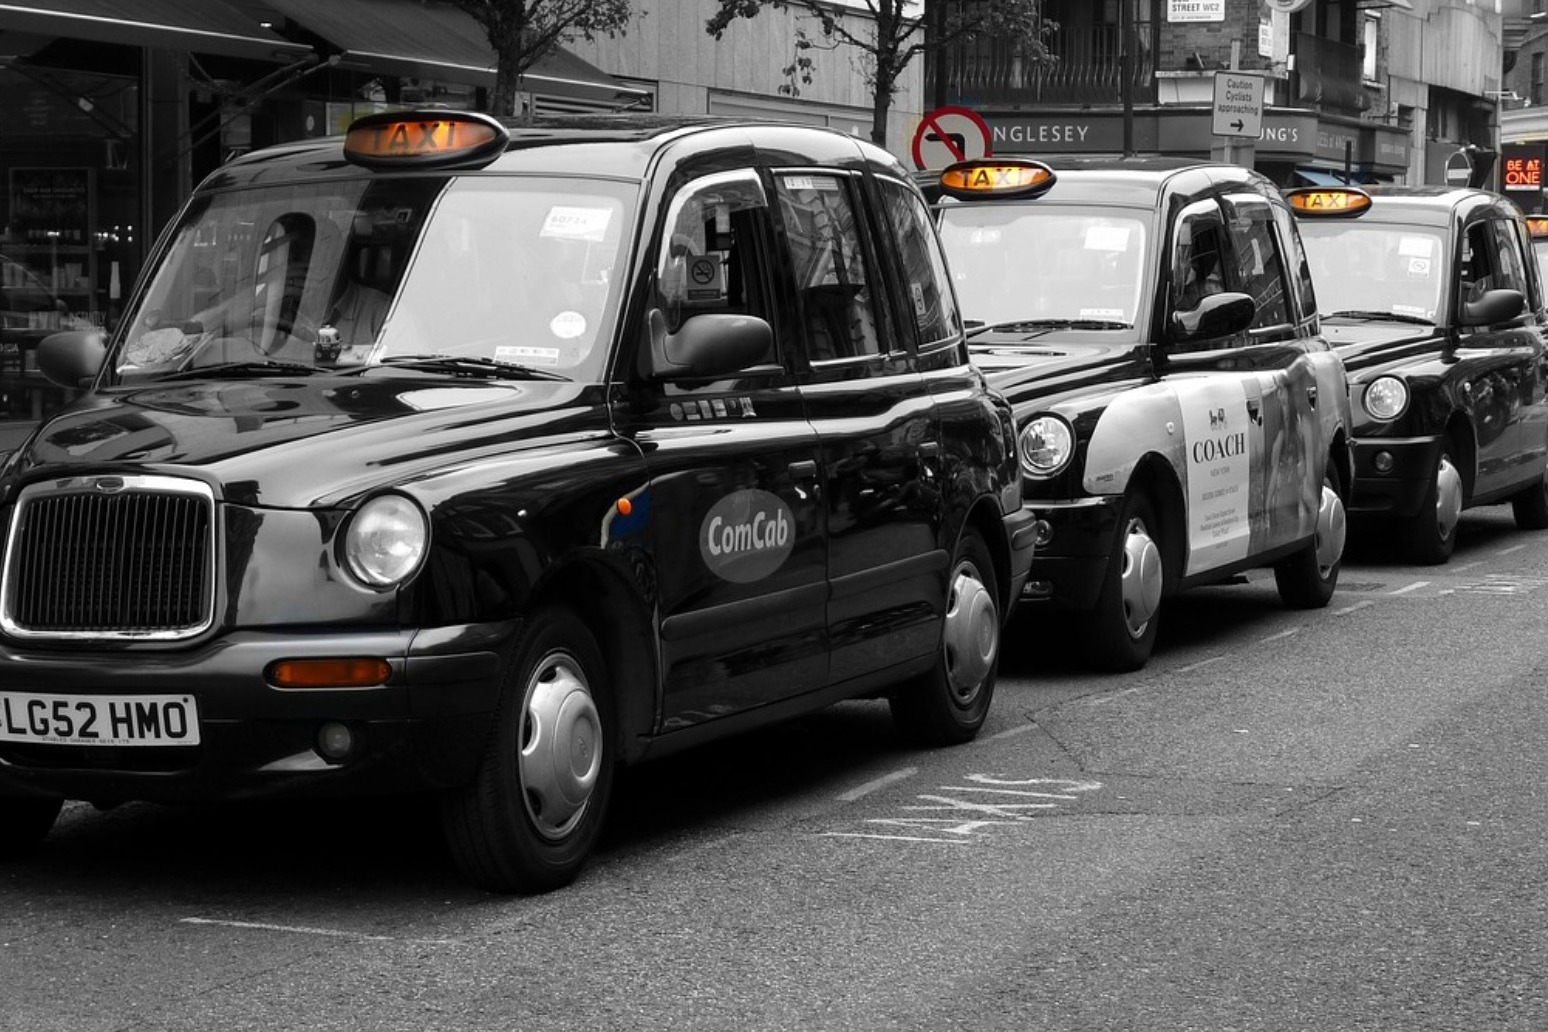 Thousands of taxi drivers, cleaners and shop workers to have Covid-19 tests